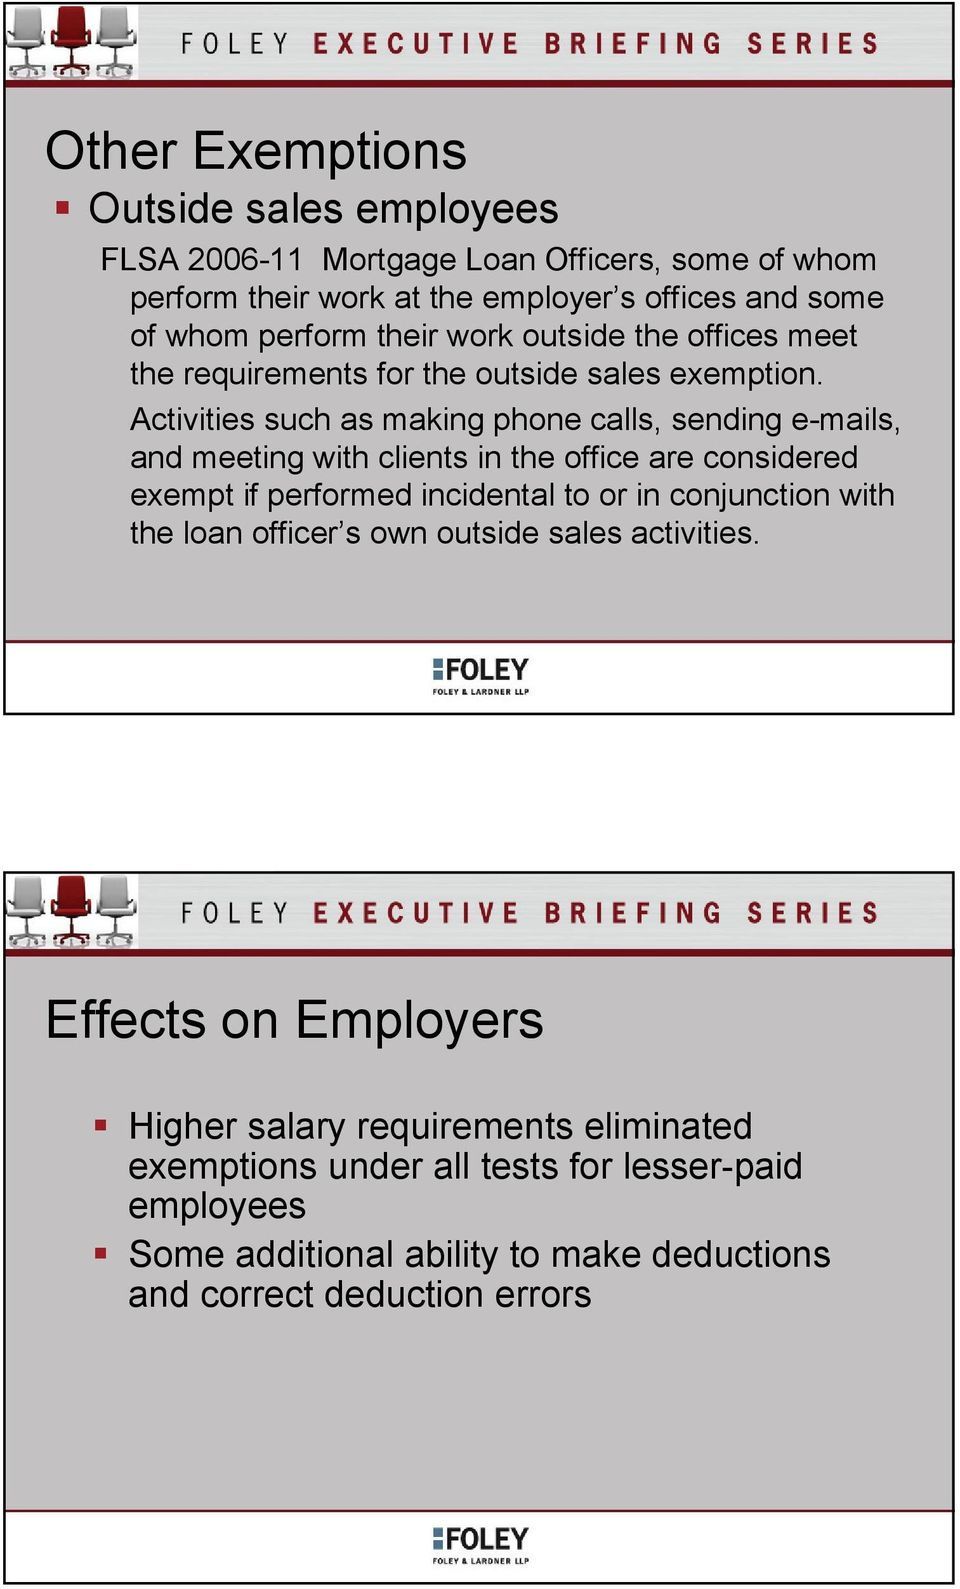 Activities such as making phone calls, sending e-mails, and meeting with clients in the office are considered exempt if performed incidental to or in conjunction